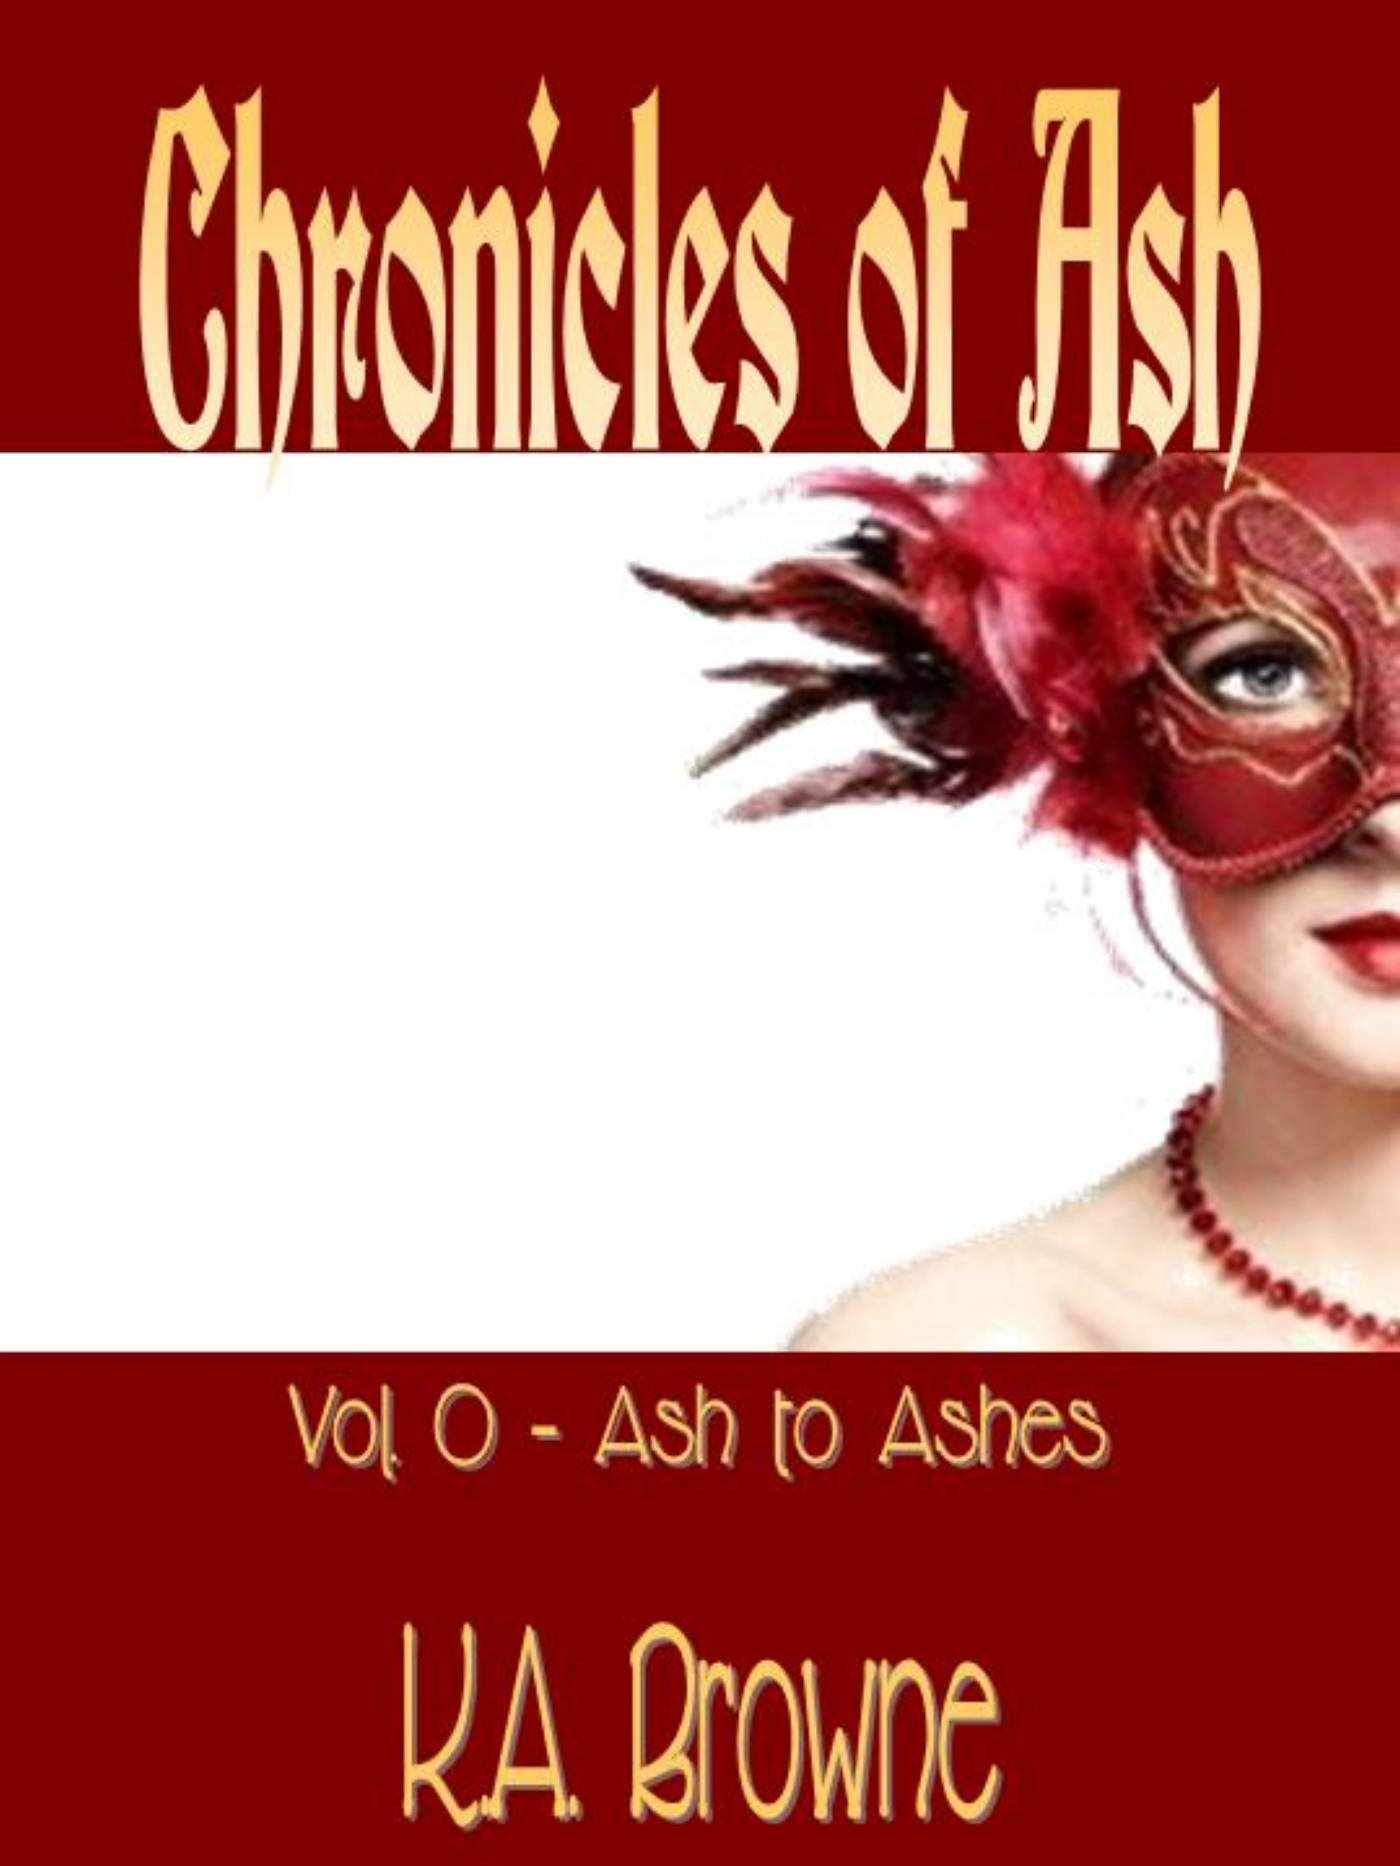 Chronicles of Ash: Vol  0 - Ash to Ashes, an Ebook by Kali Amanda Browne